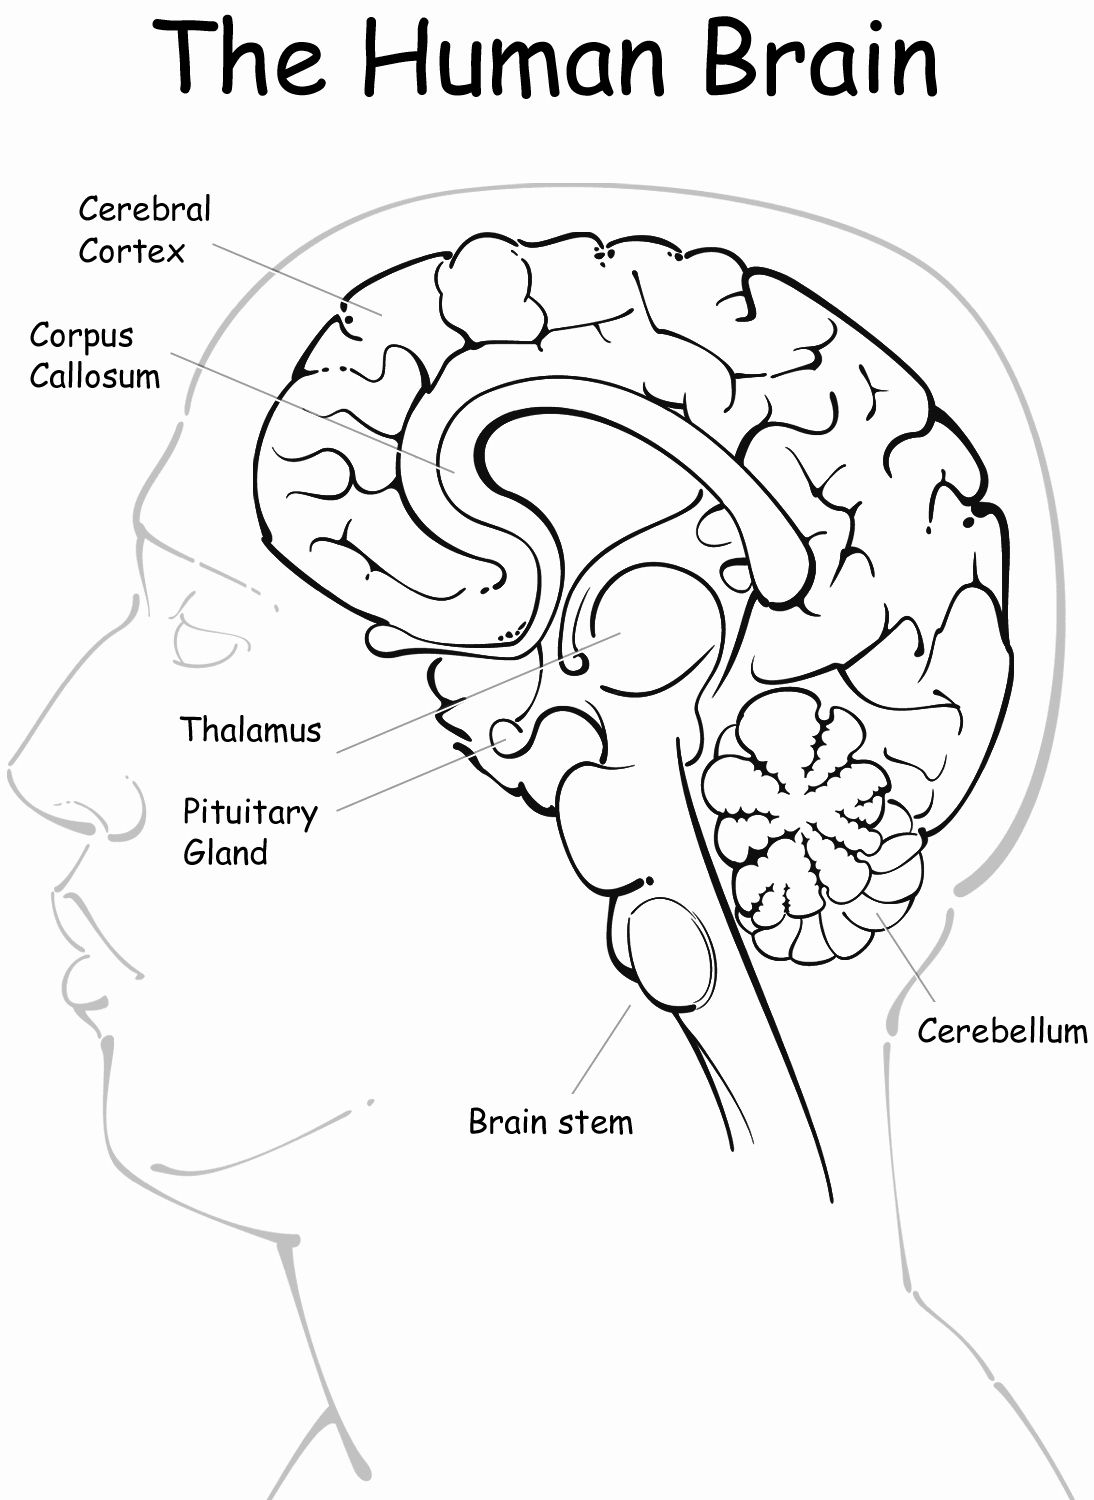 24 The Human Brain Coloring Book In